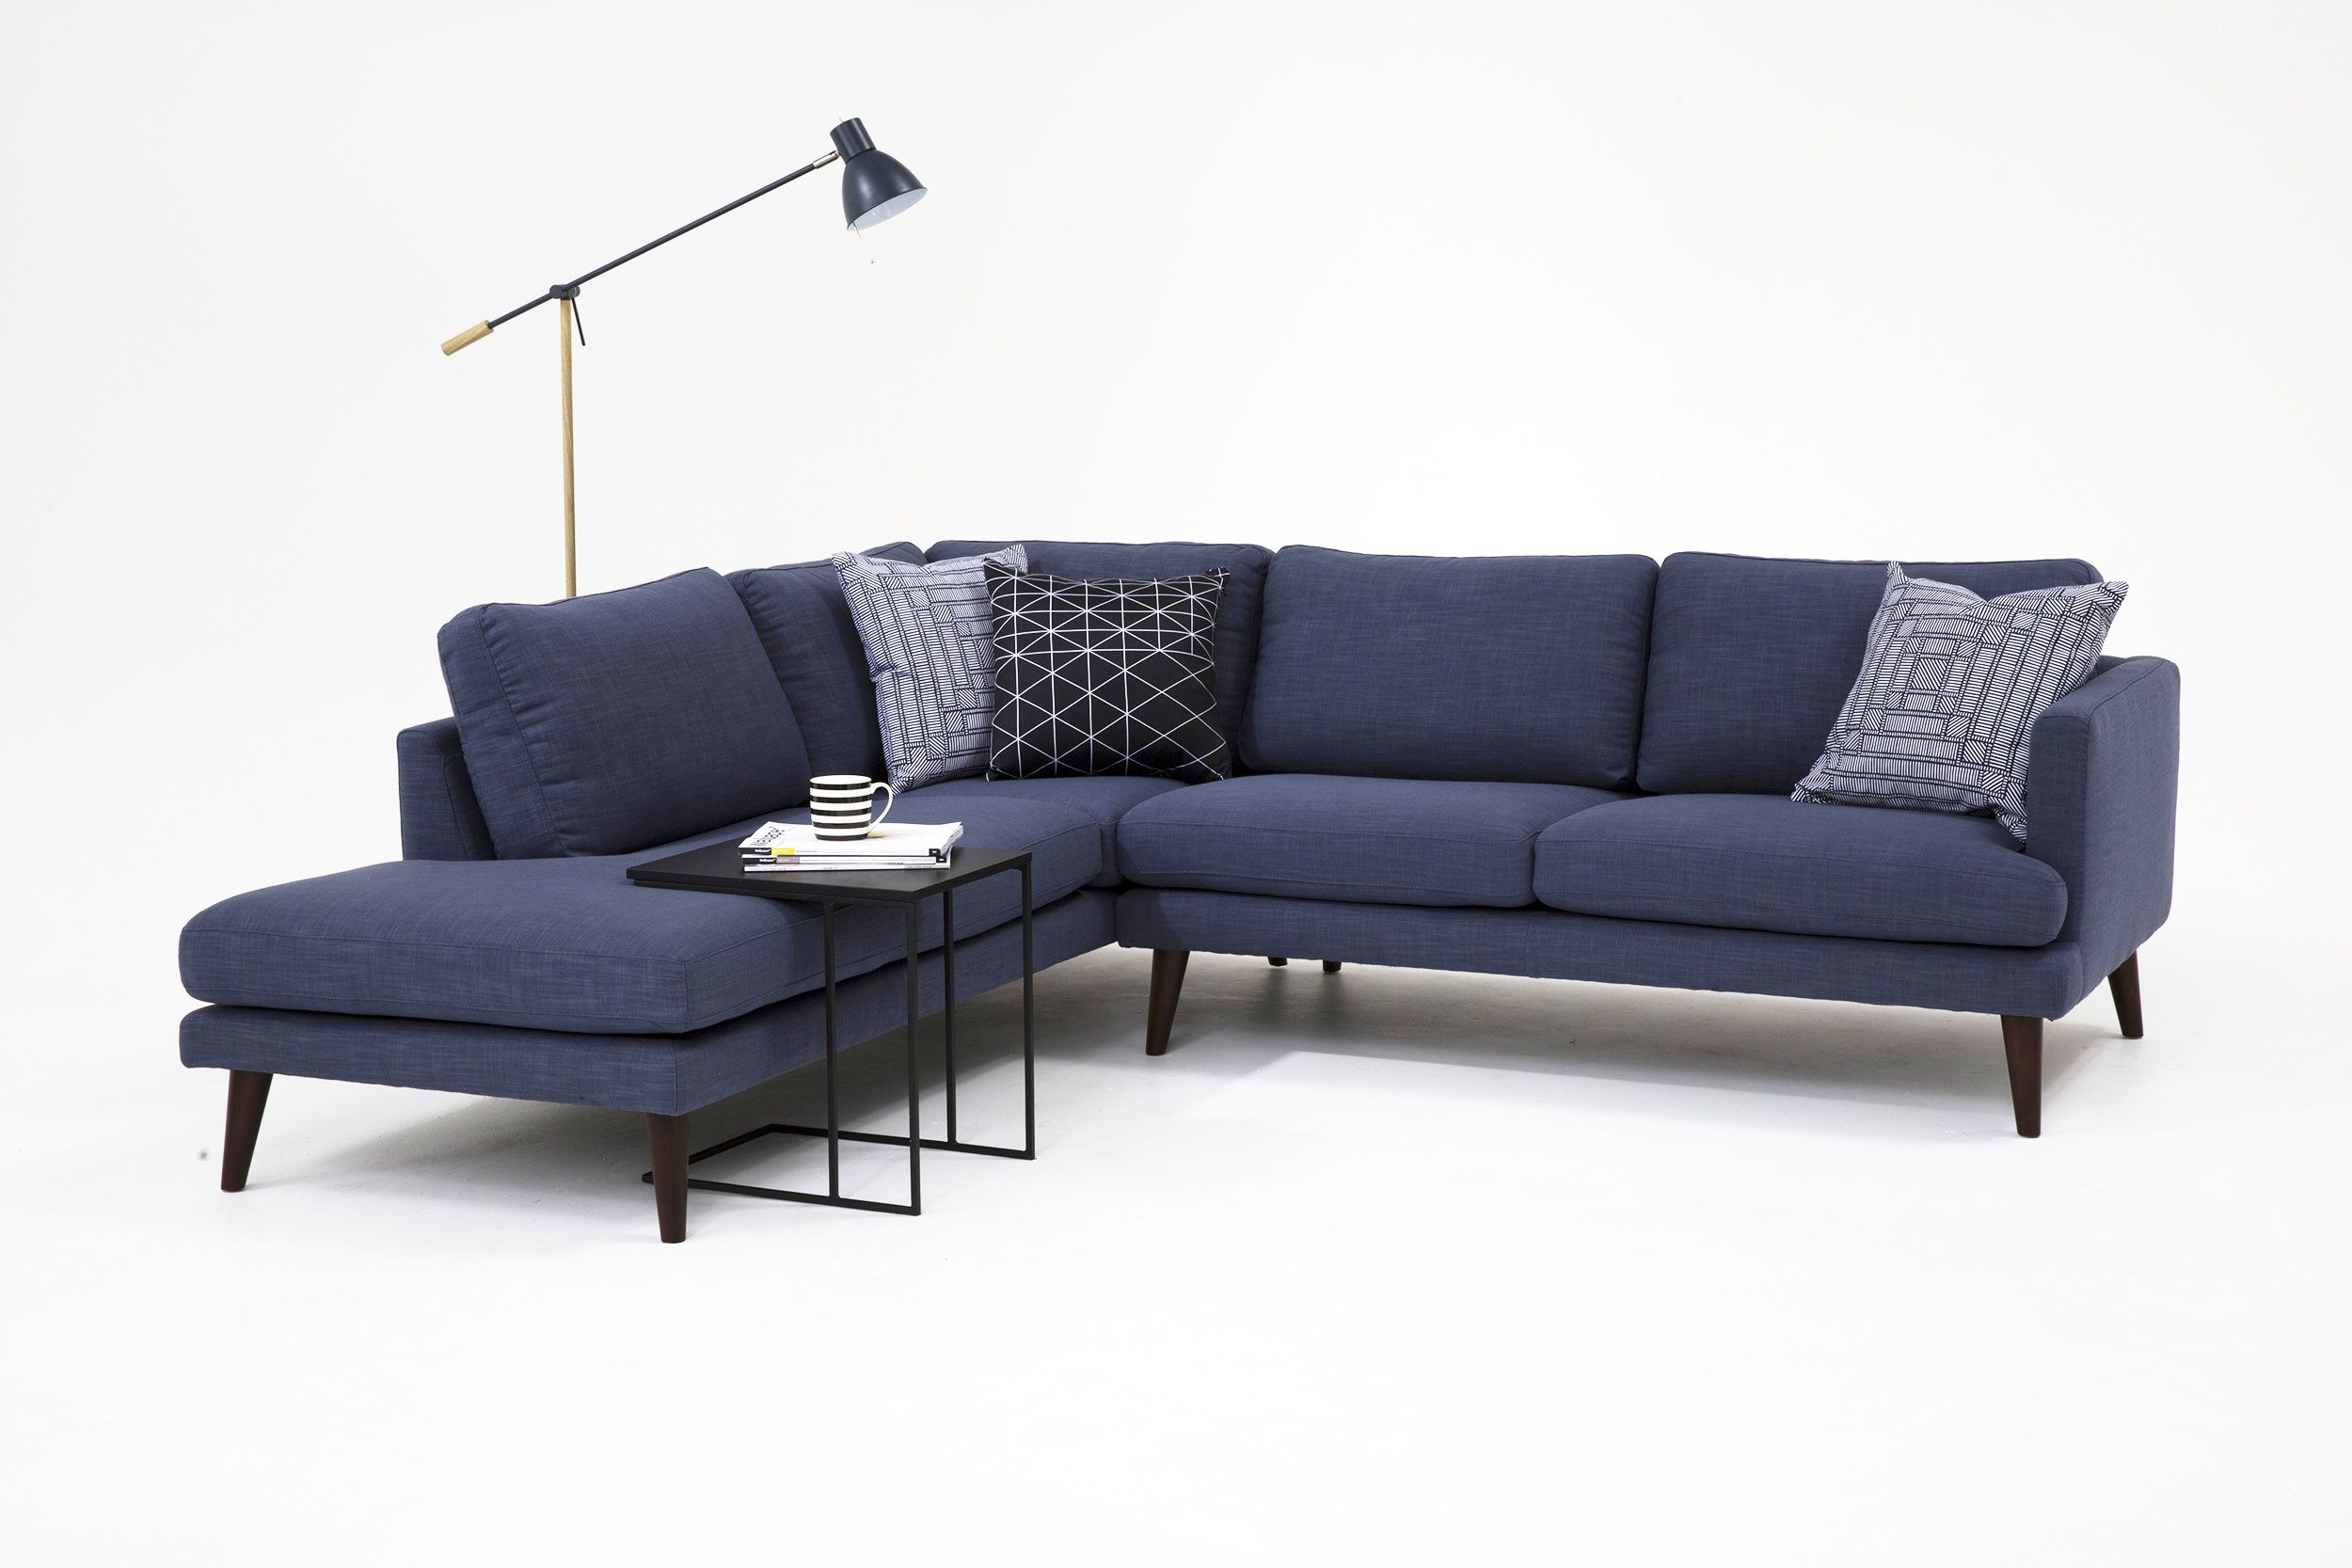 The Hugo Corner Sofa With Chaise, Floor Lamp And Myron